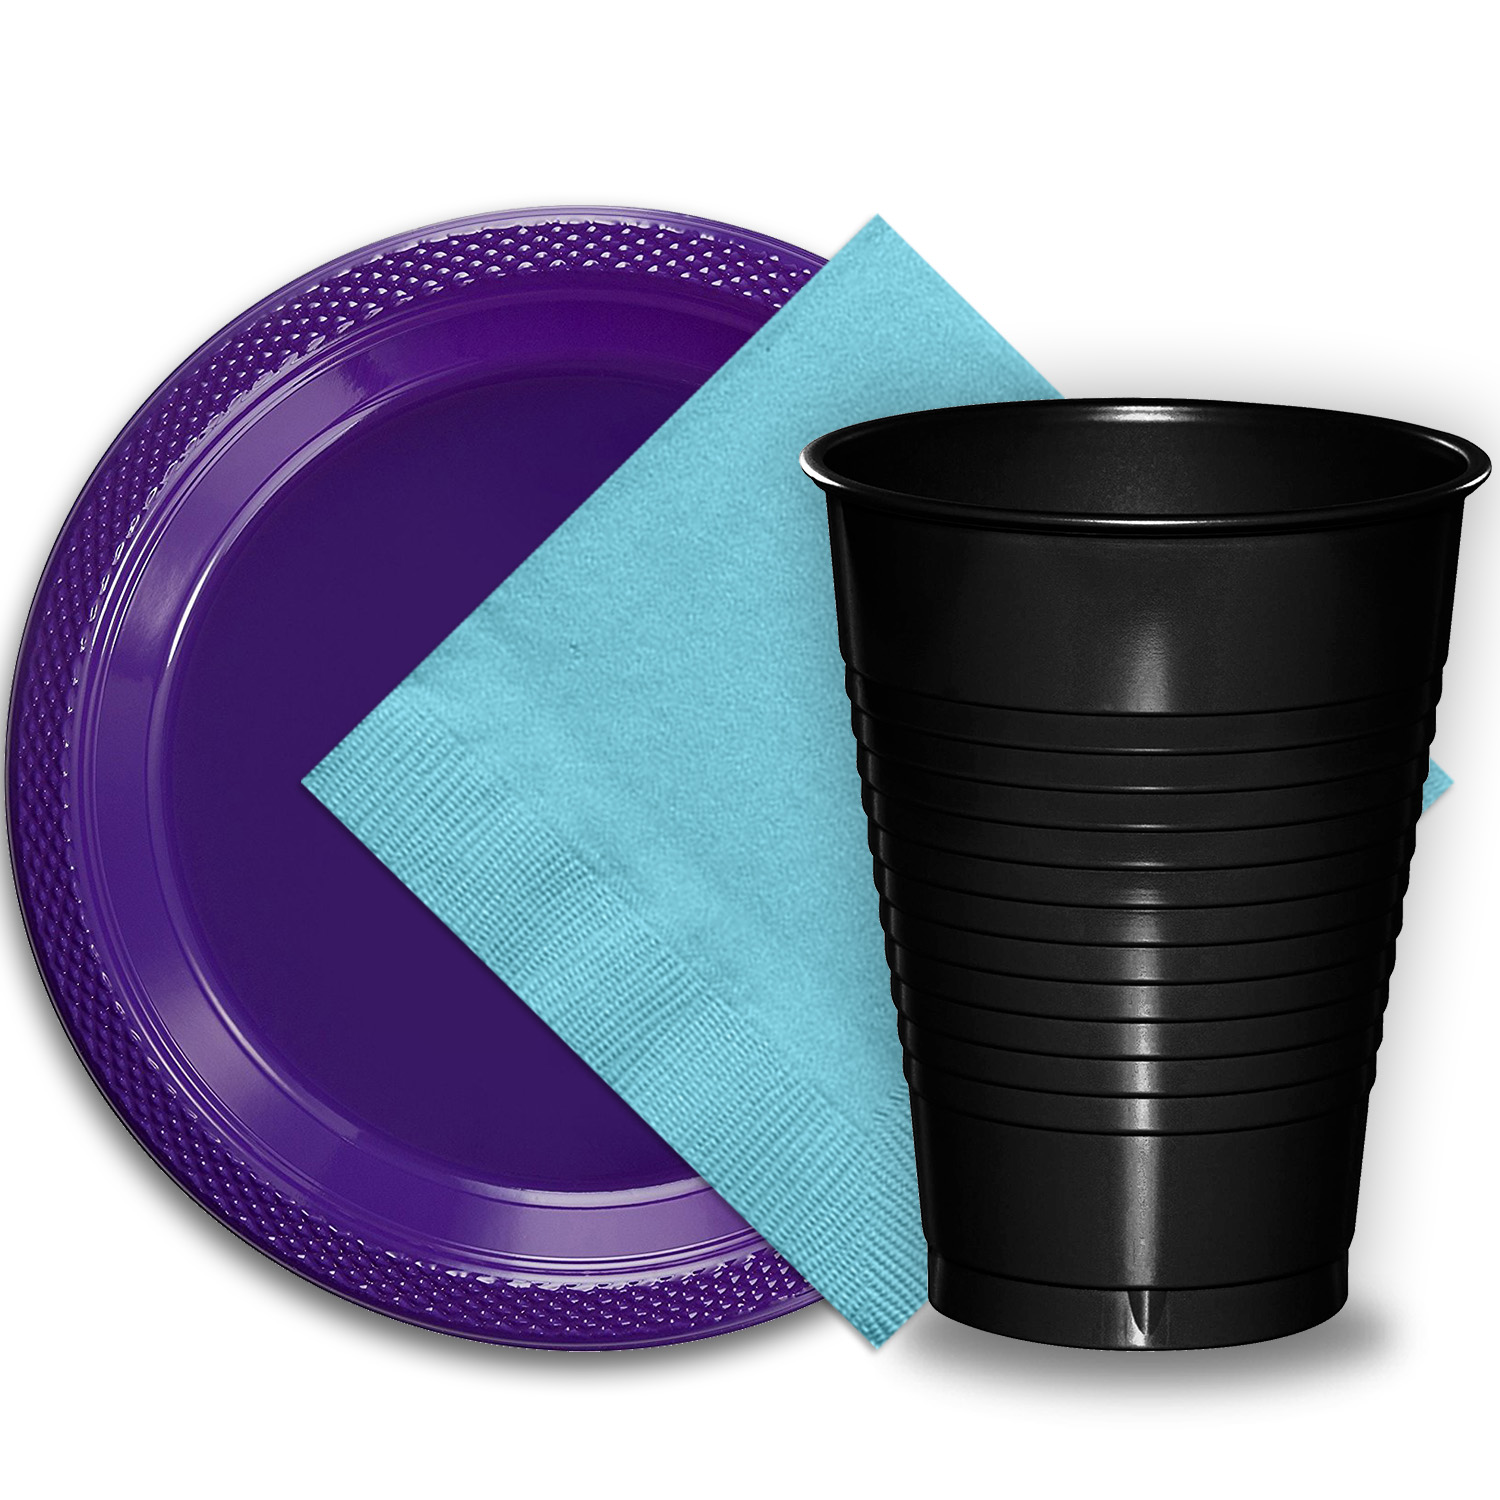 """50 Purple Plastic Plates (9""""), 50 Black Plastic Cups (12 oz.), and 50 Light Blue Paper Napkins, Dazzelling Colored Disposable Party Supplies Tableware Set for Fifty Guests."""